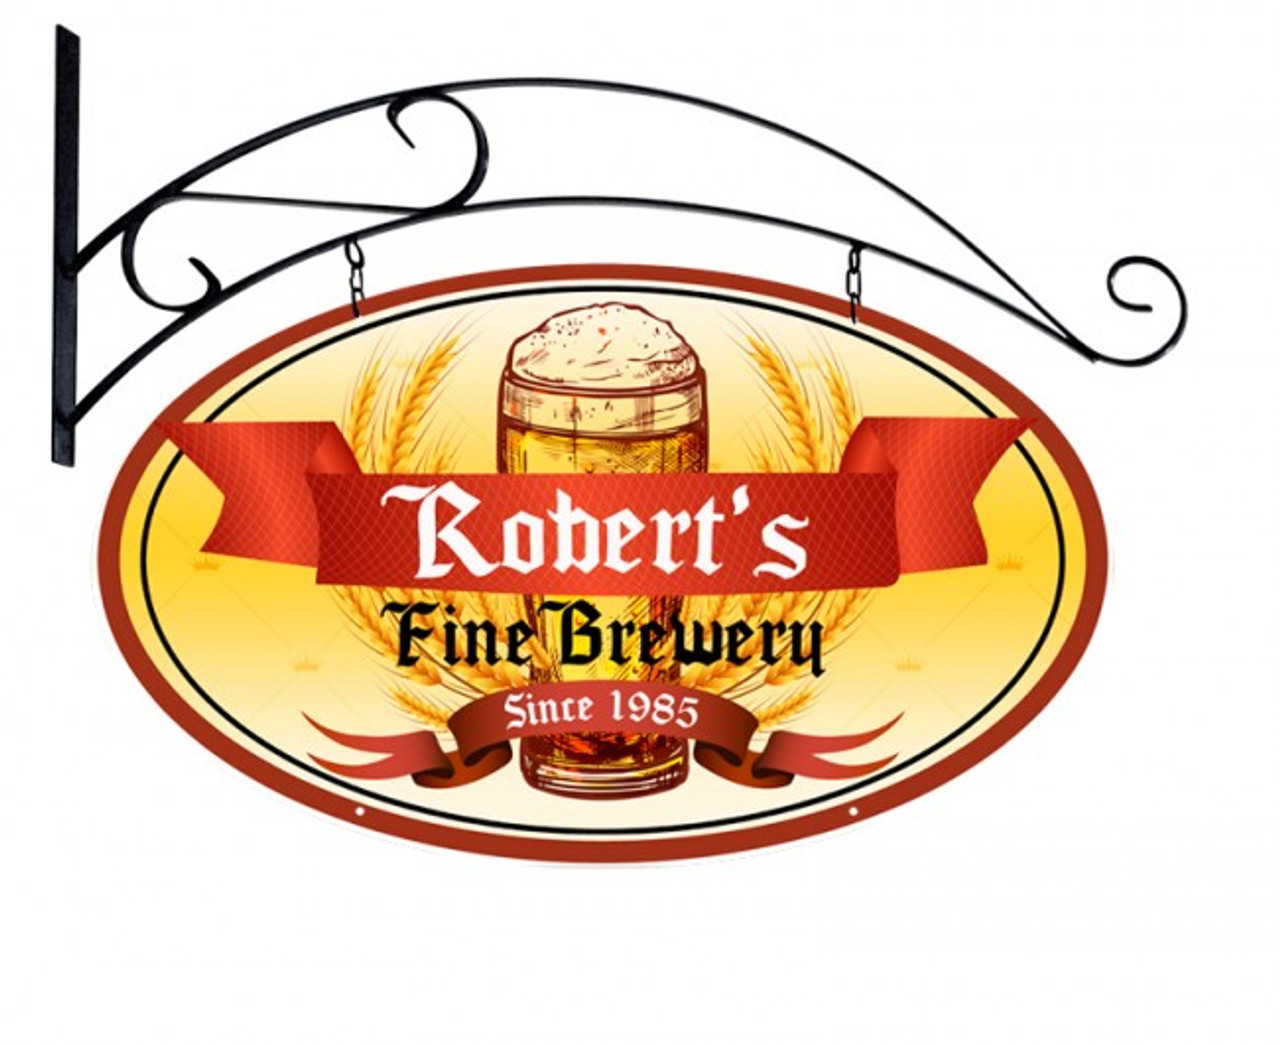 Fine Brewery Double Sided Oval Metal Sign - Personalized 24 x 14 Inches